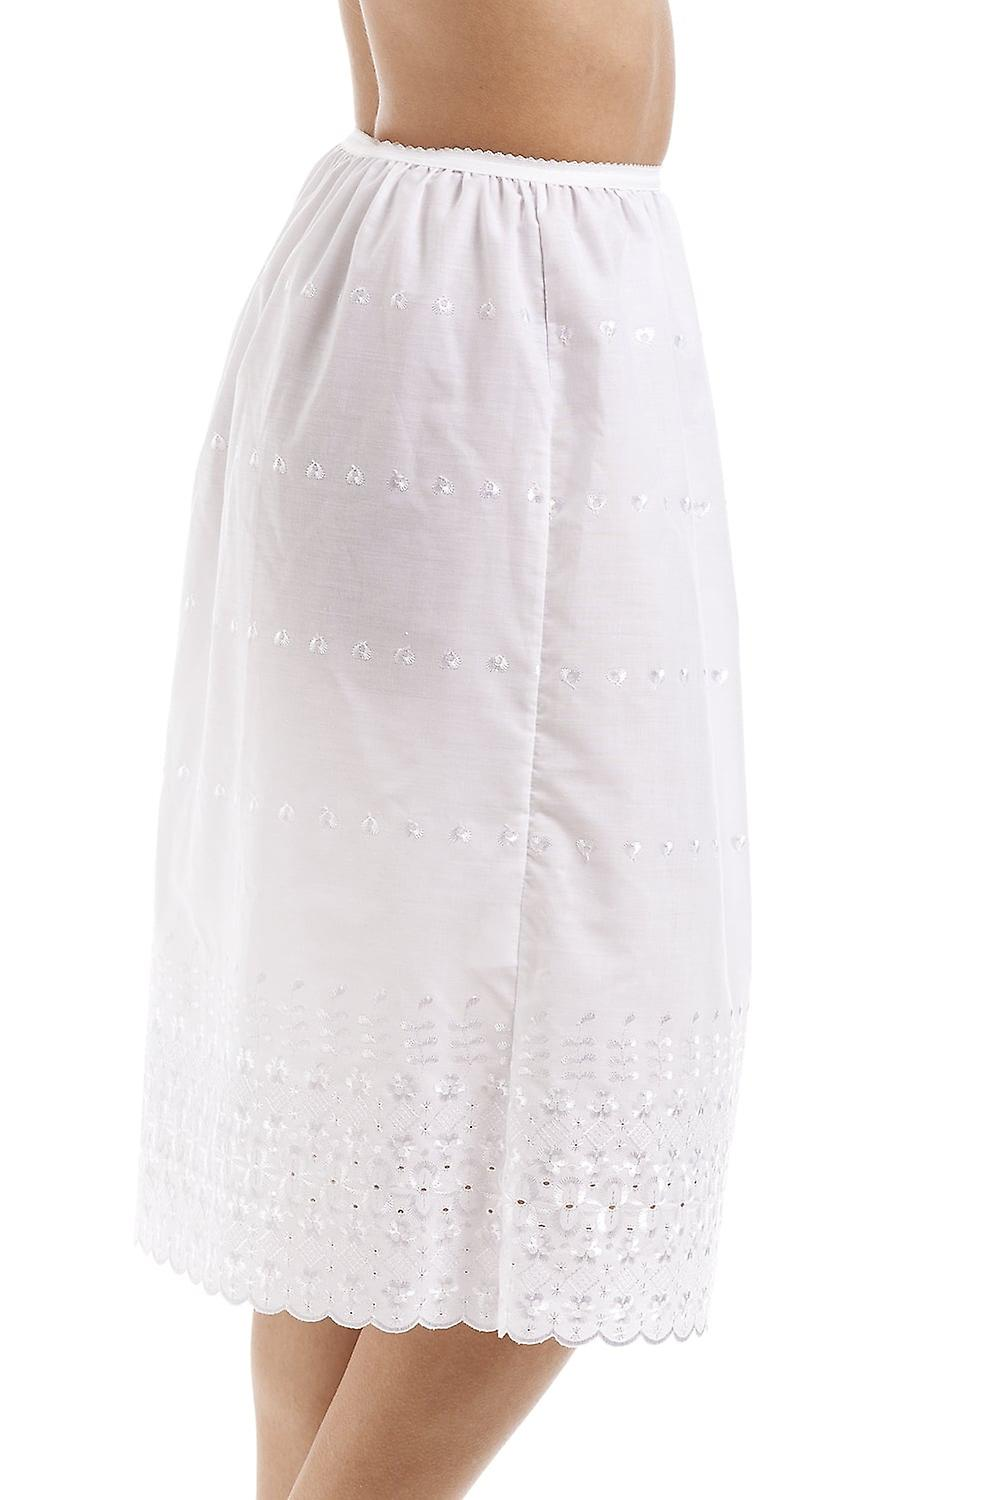 Camille Classic White Embroidered 32'' Half Length Lace Trim Under Skirt Slip